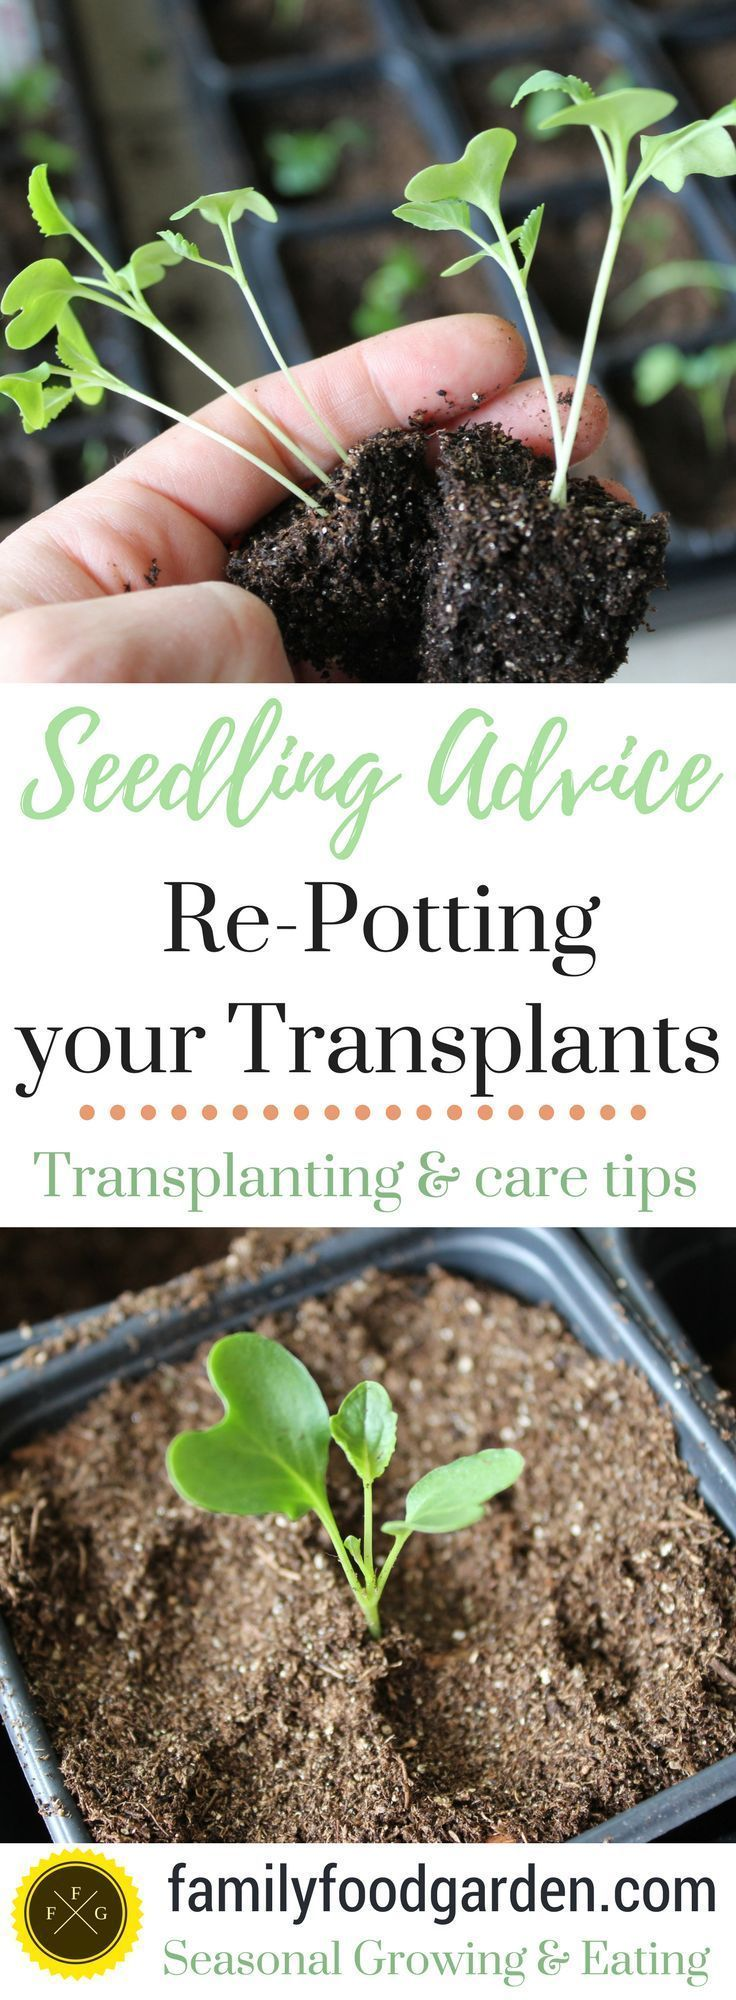 Tips for Re-Potting your Seedlings